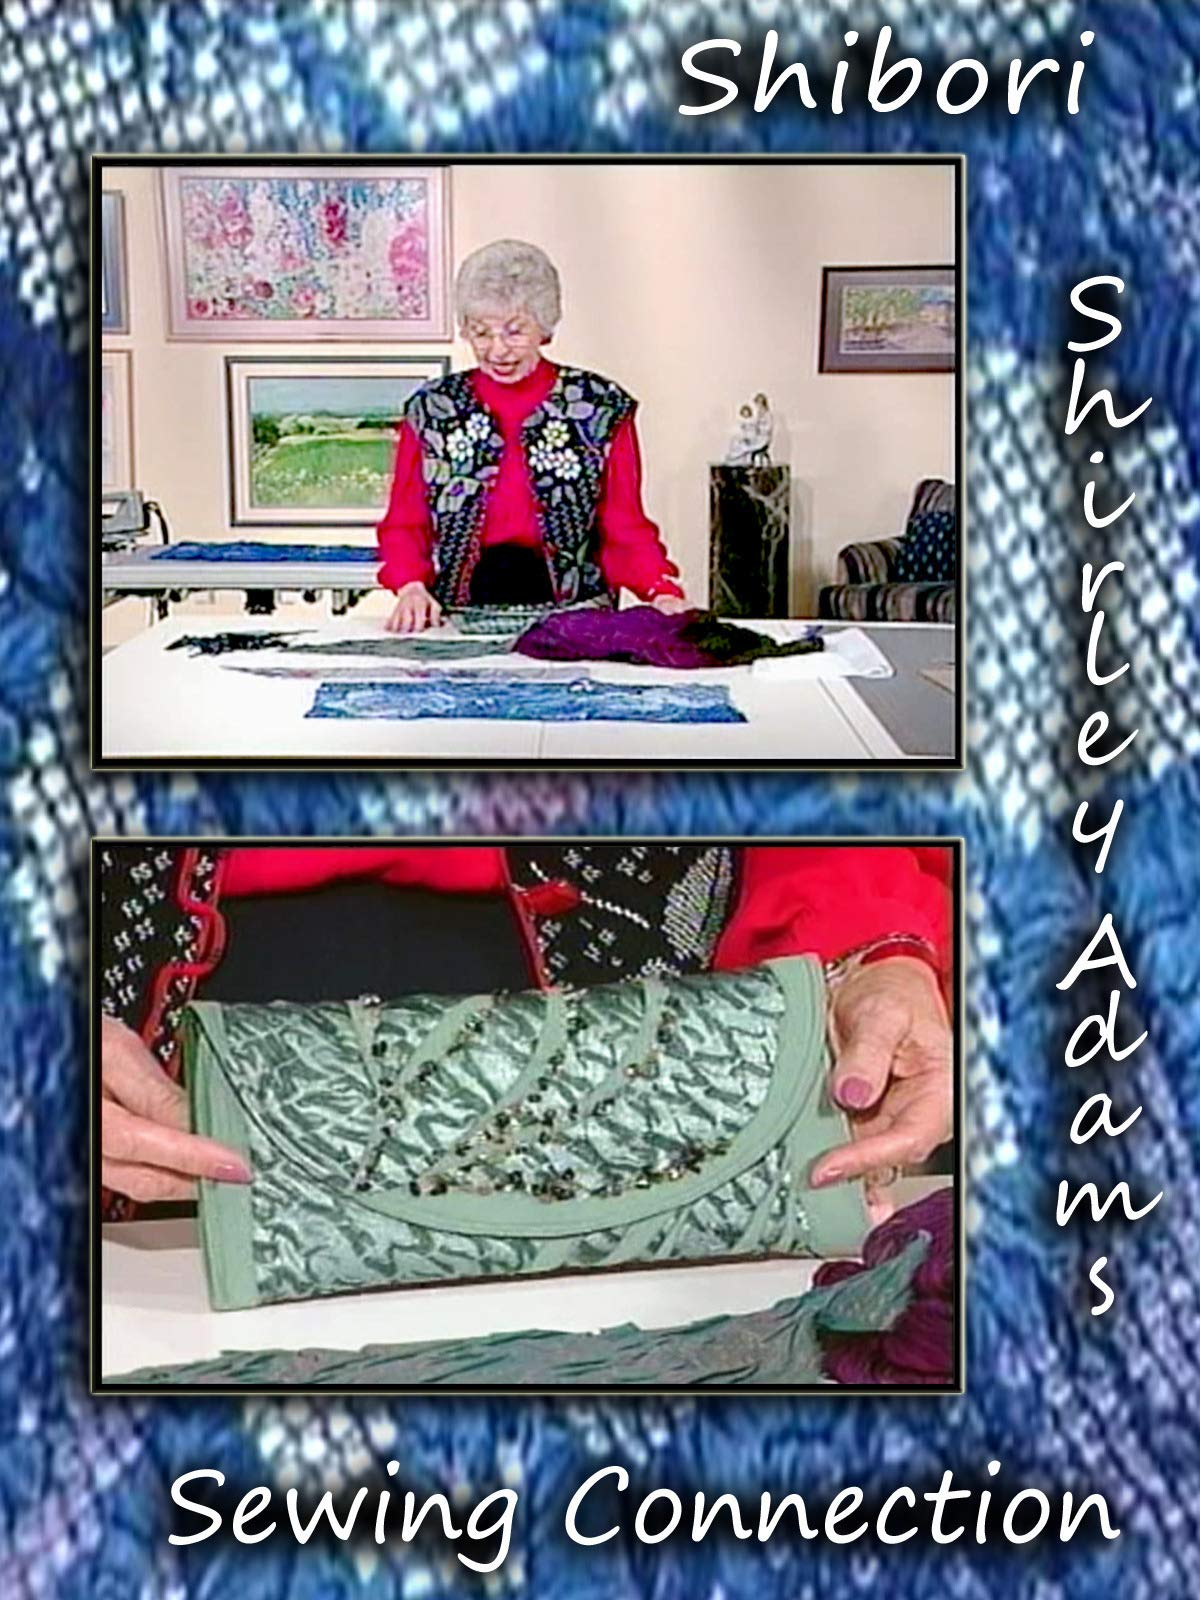 Shibori with Shirley Adams Sewing Connection on Amazon Prime Video UK